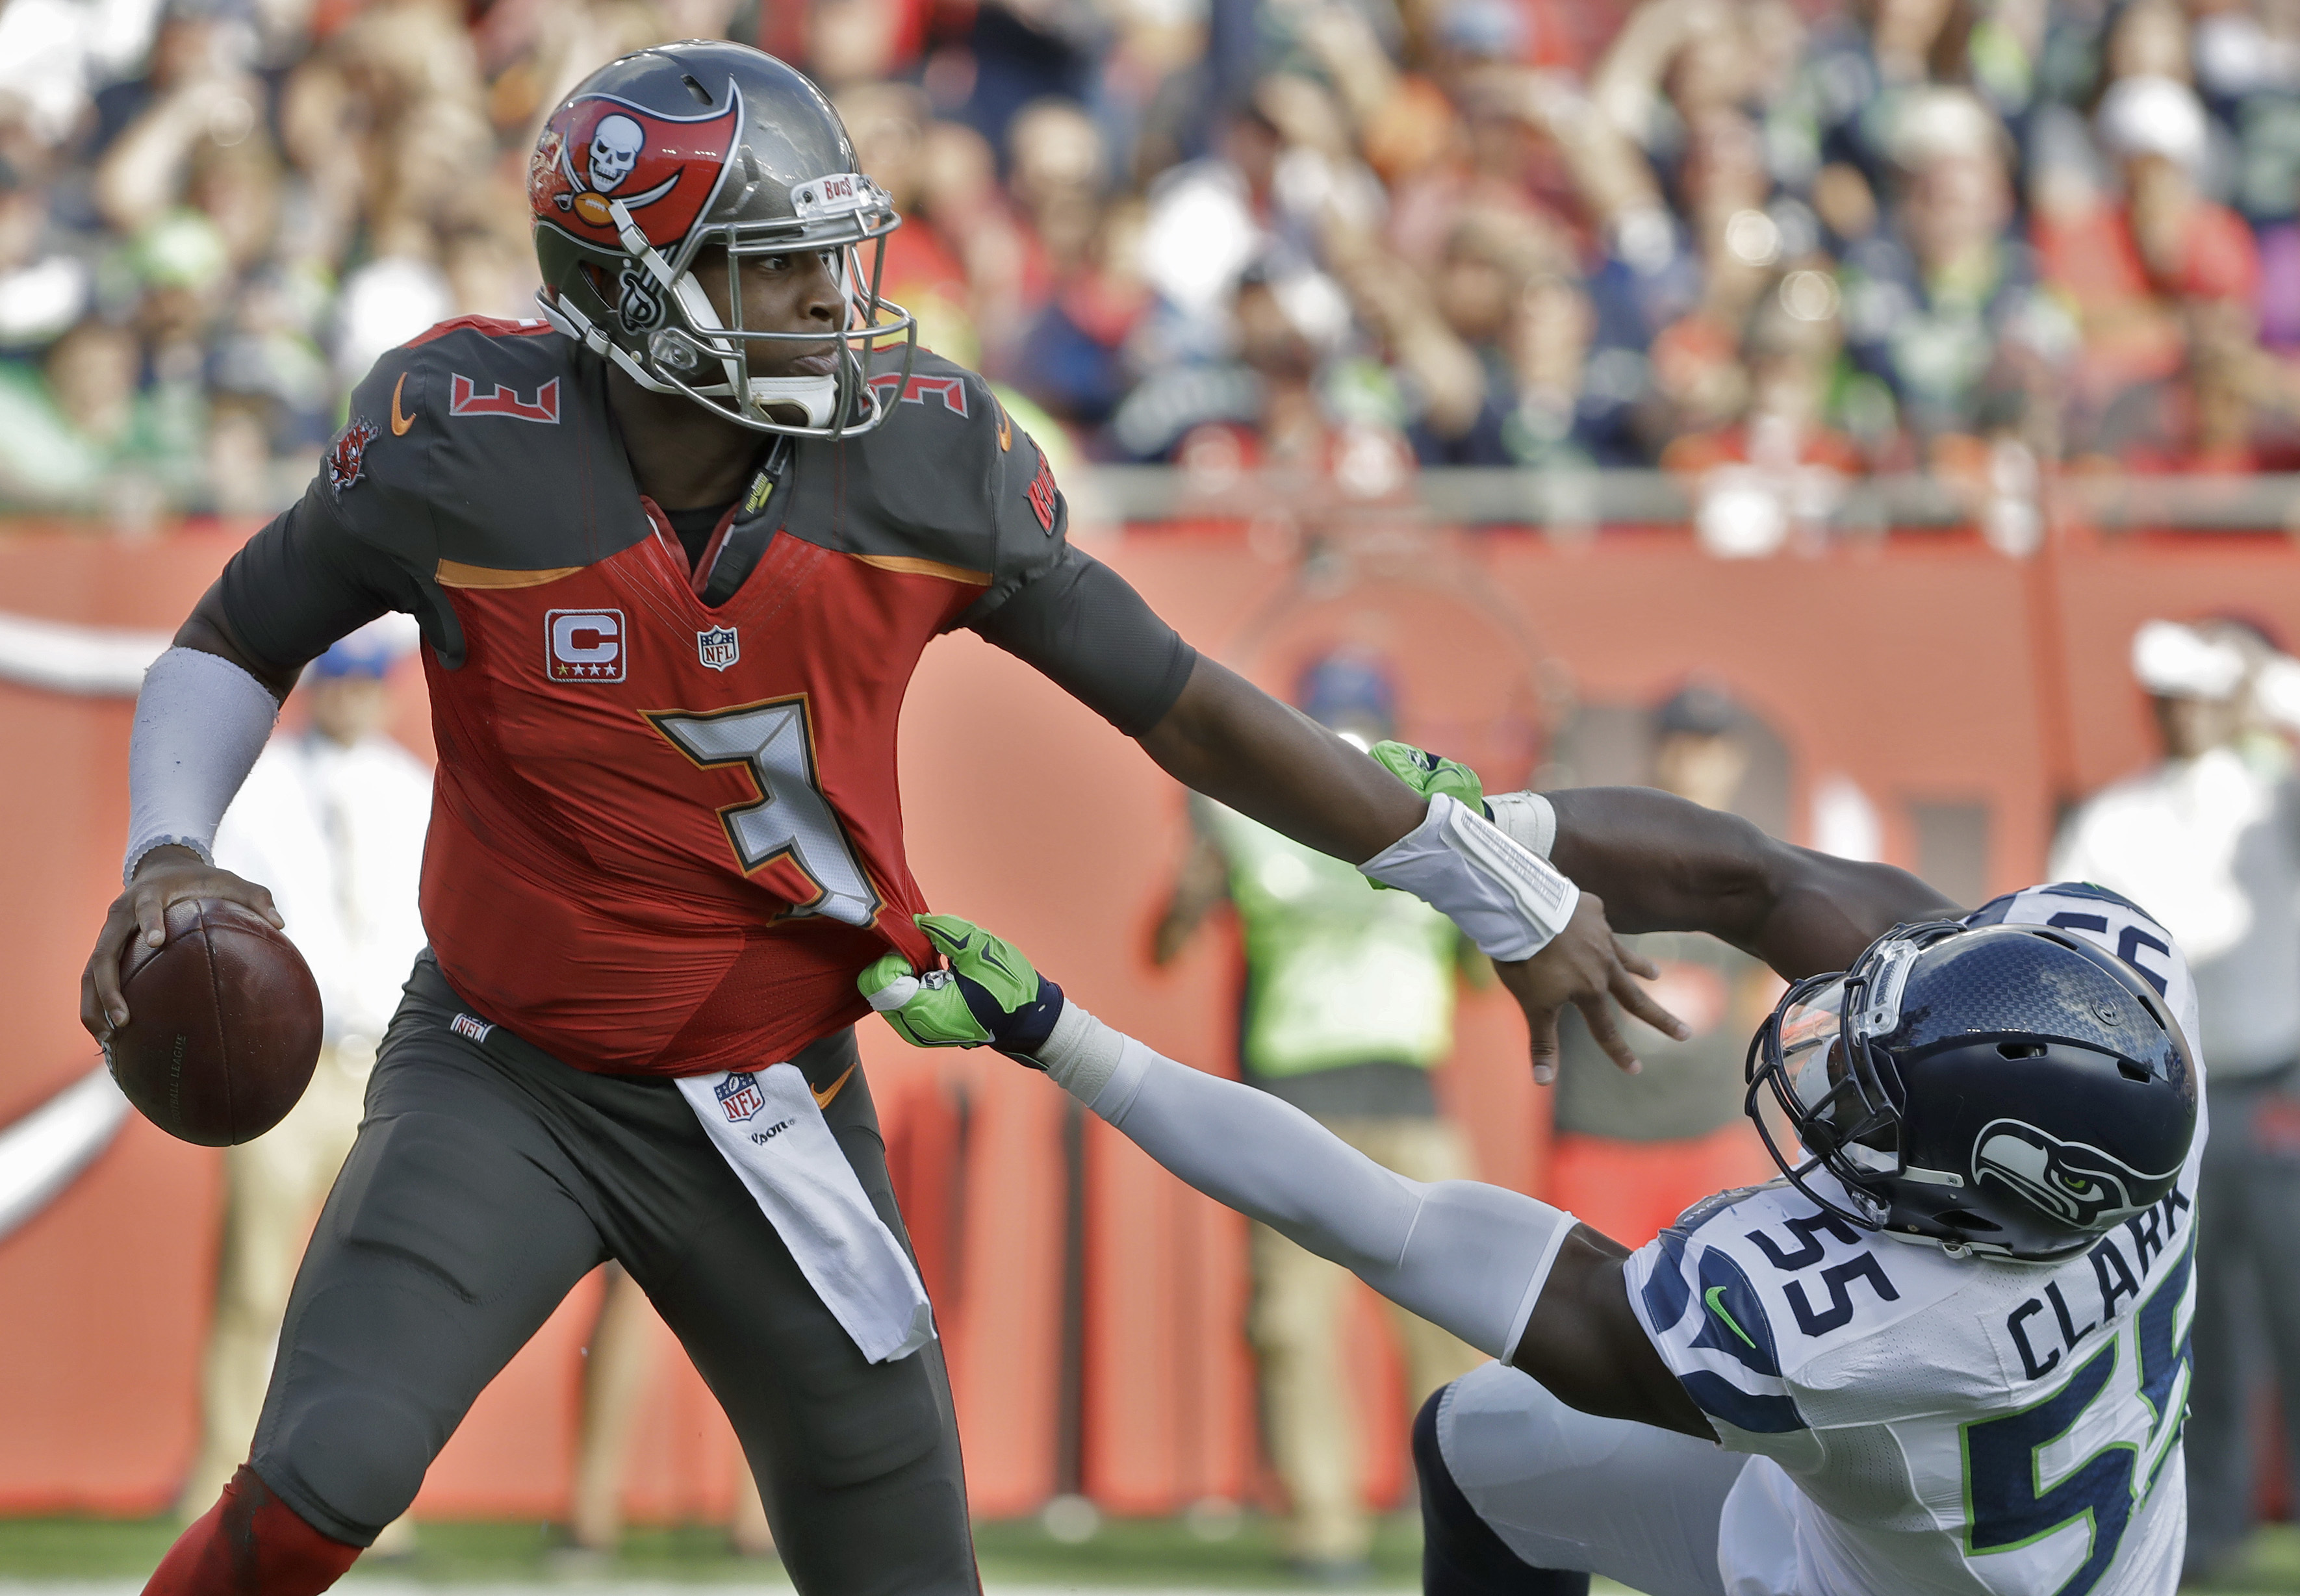 In this Sunday, Nov. 27, 2016, photo, Tampa Bay Buccaneers quarterback Jameis Winston (3) pushes off Seattle Seahawks defensive end Frank Clark (55) during the first quarter of an NFL football game in Tampa, Fla. The Buccaneers (6-5) have won three straig